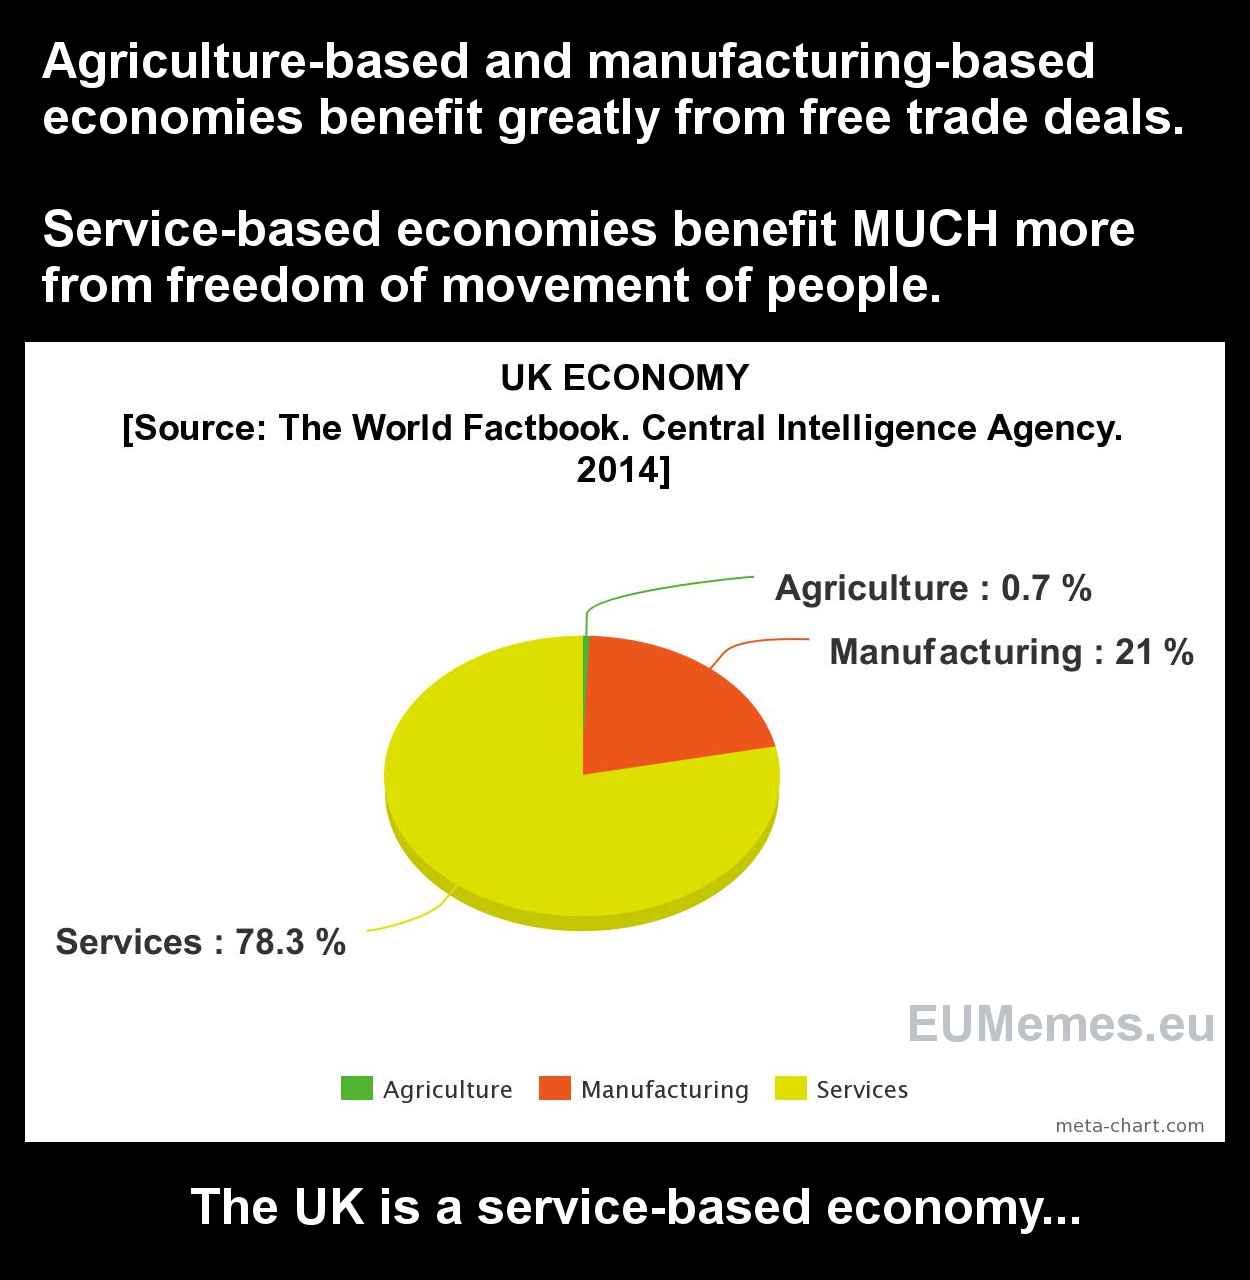 The UK's service-based economy needs the Single Market much more than it needs simple free trade deals.